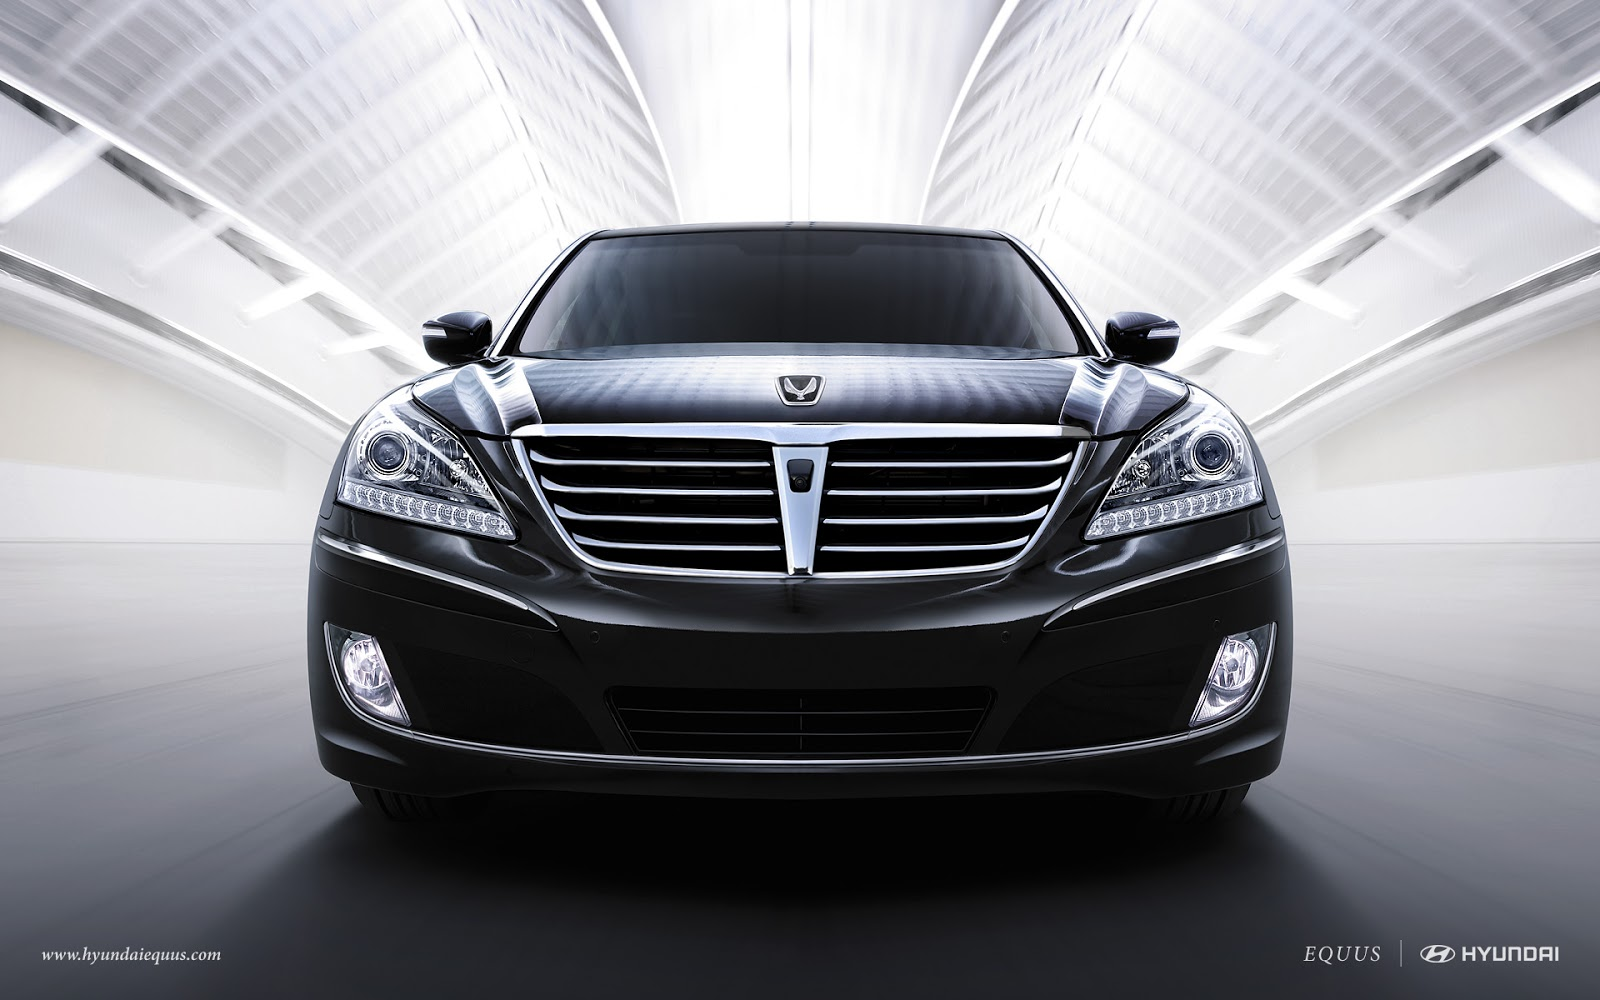 car gear free wallpapers affodable luxury hyundai equus centennial. Black Bedroom Furniture Sets. Home Design Ideas